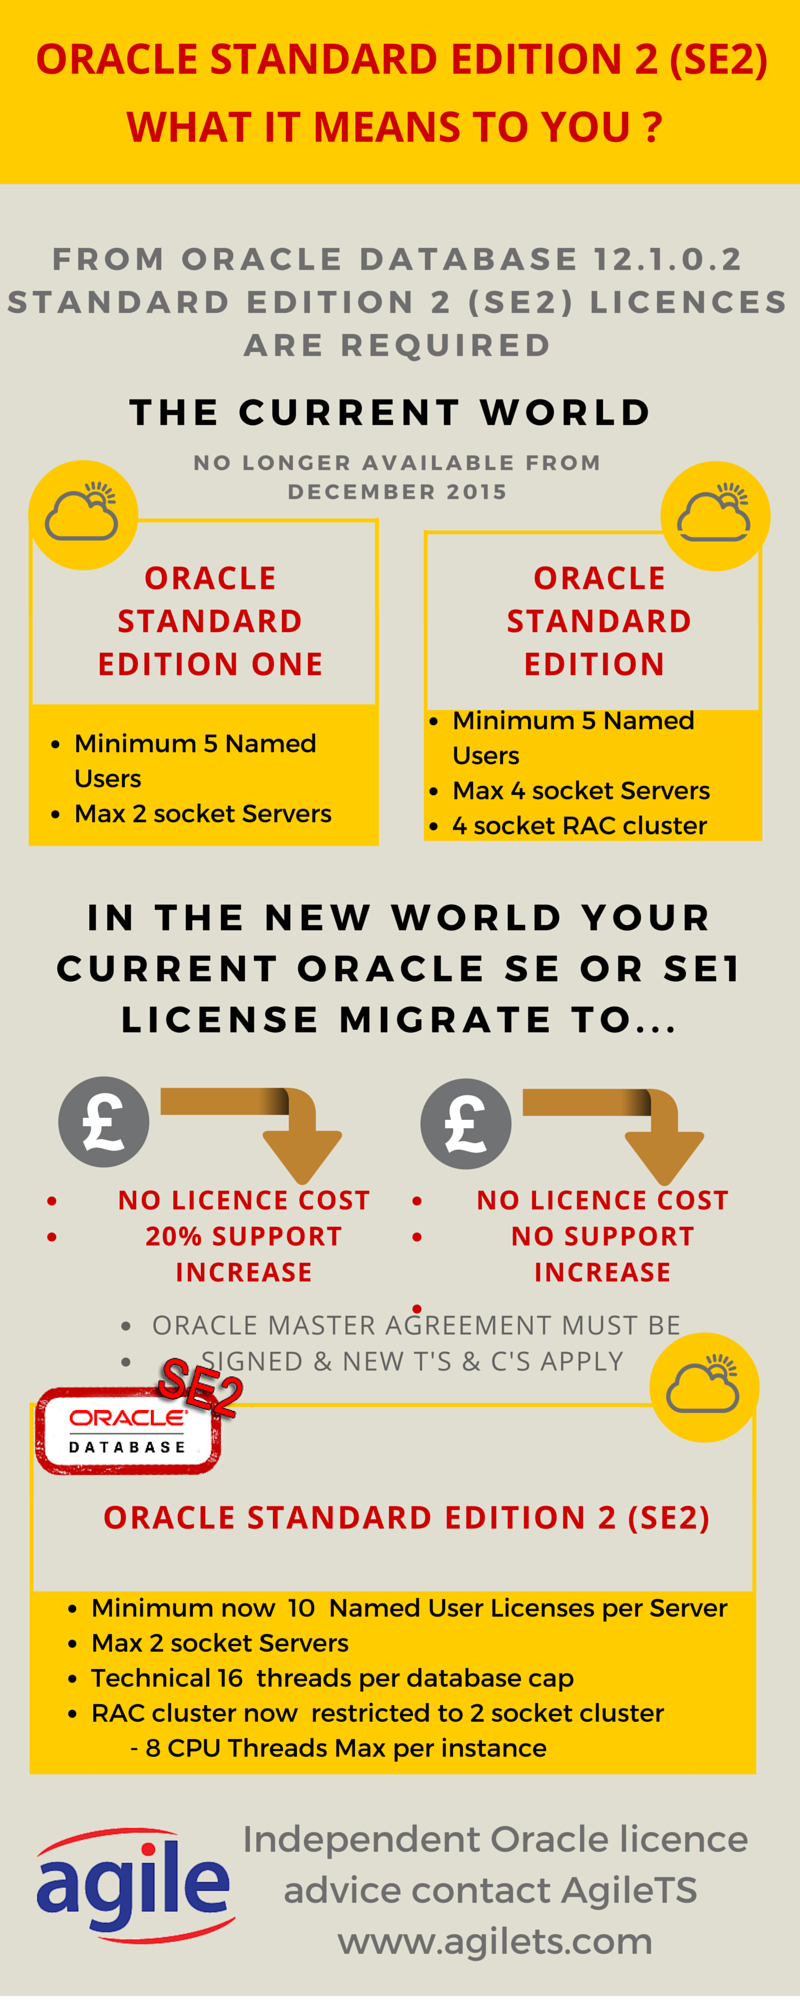 Oracle SE2 infographic